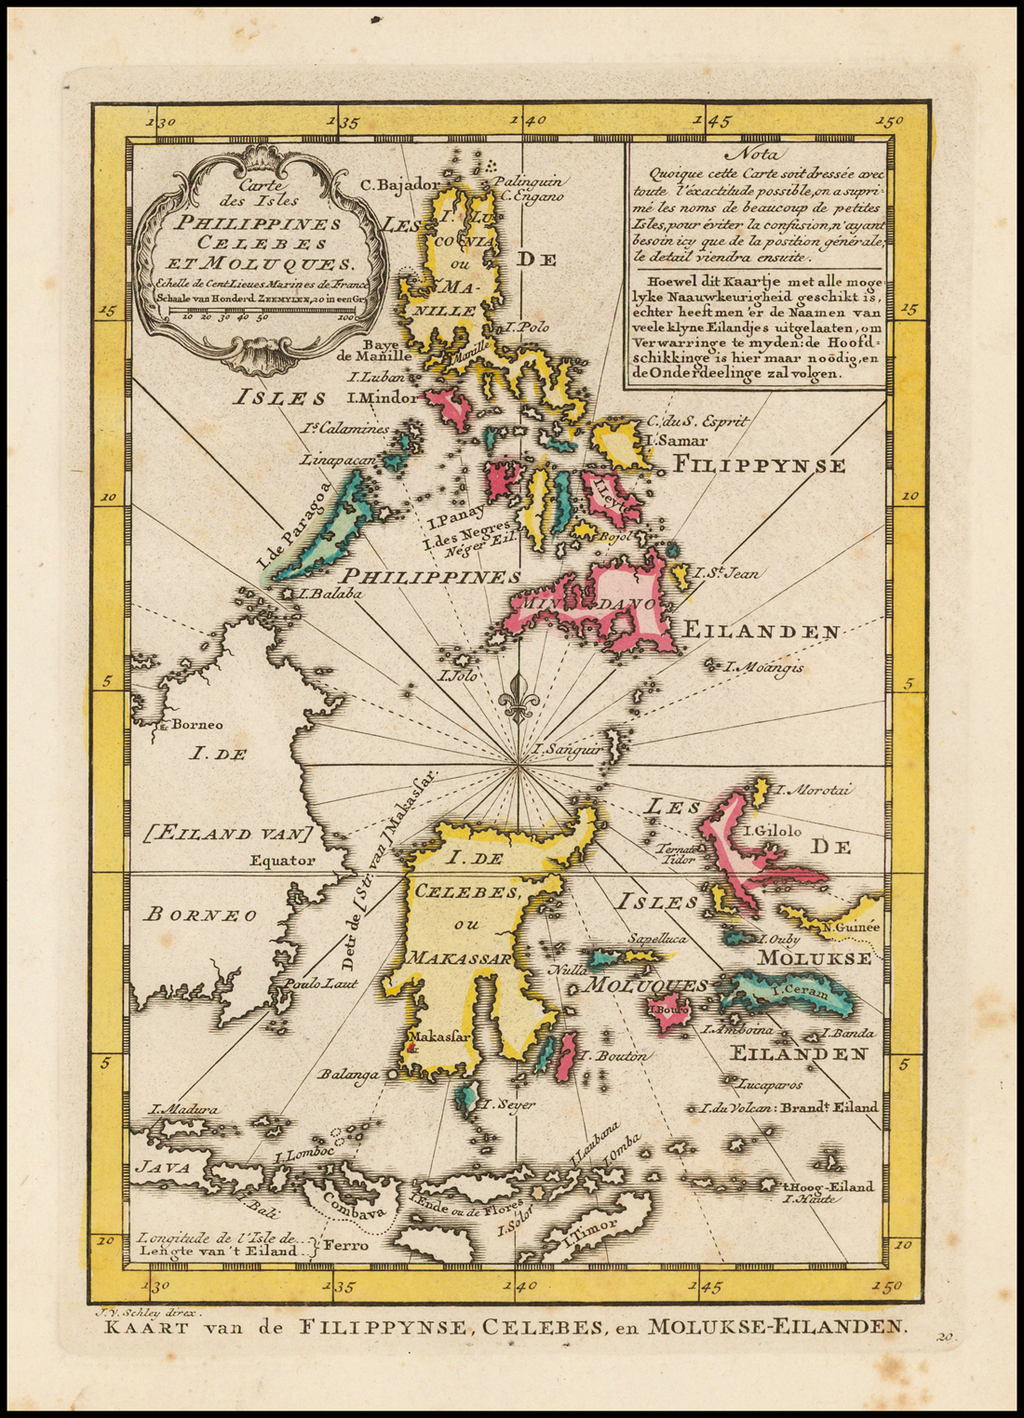 Carte Des Isles Philippines Celebes et Moluques By J.V. Schley